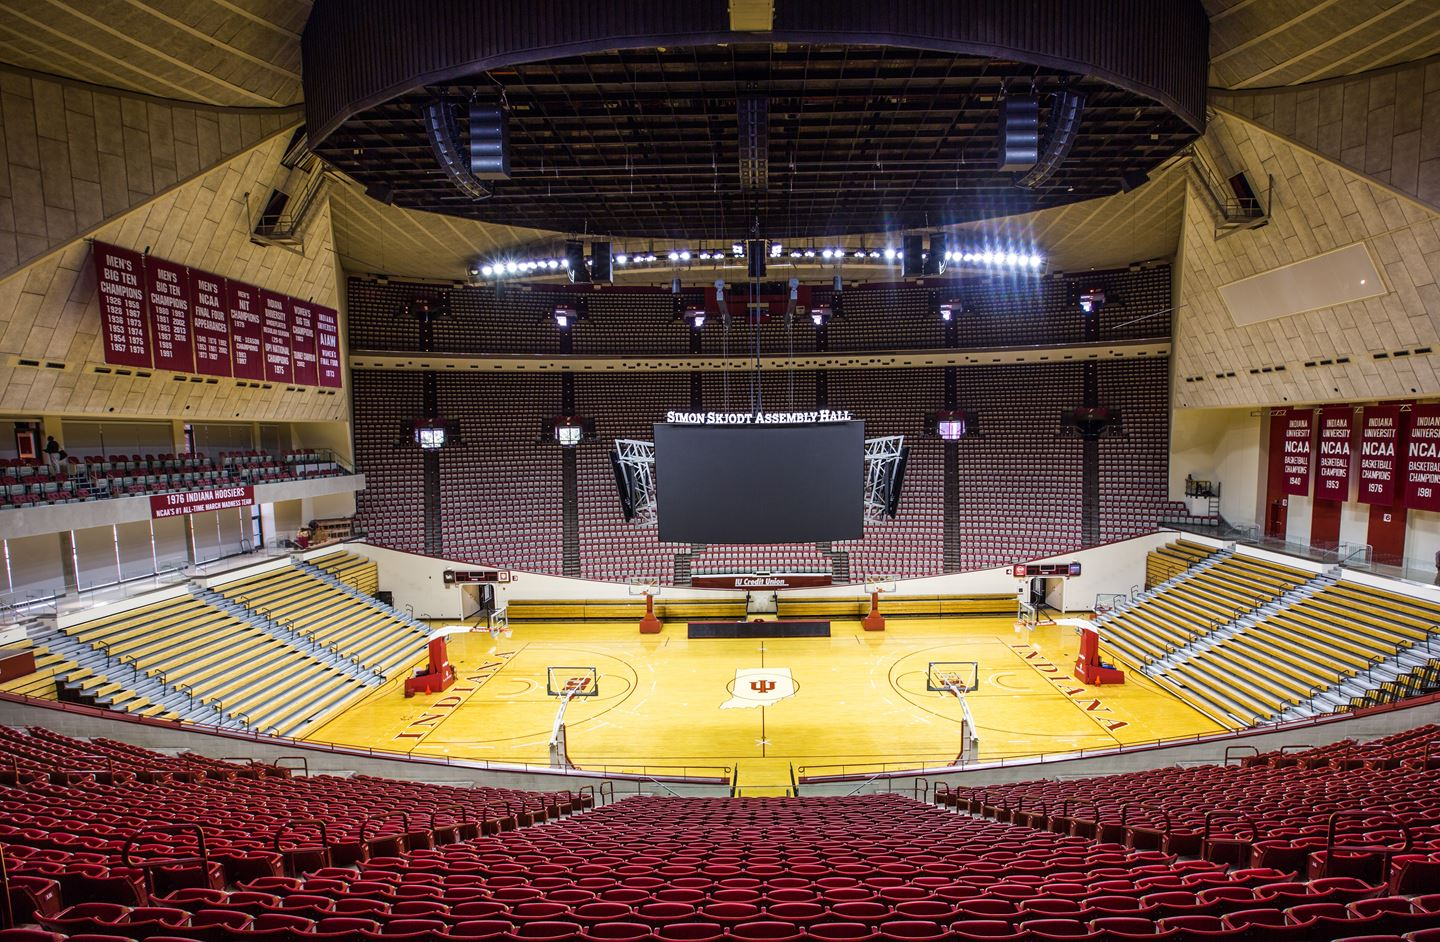 Assembly Hall from the inside